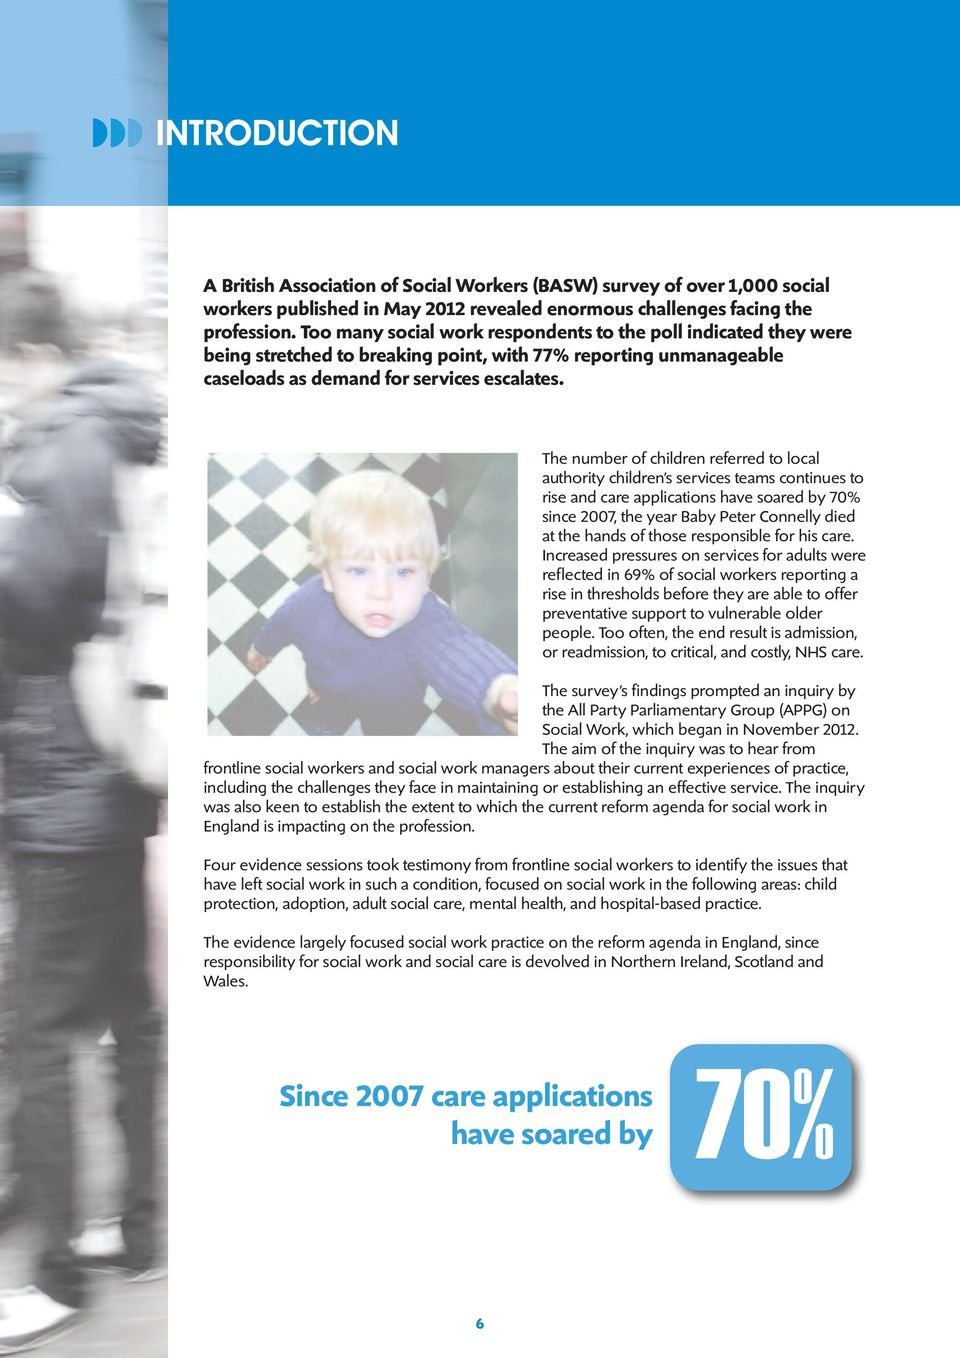 The number of children referred to local authority children s services teams continues to rise and care applications have soared by 70% since 2007, the year Baby Peter Connelly died at the hands of